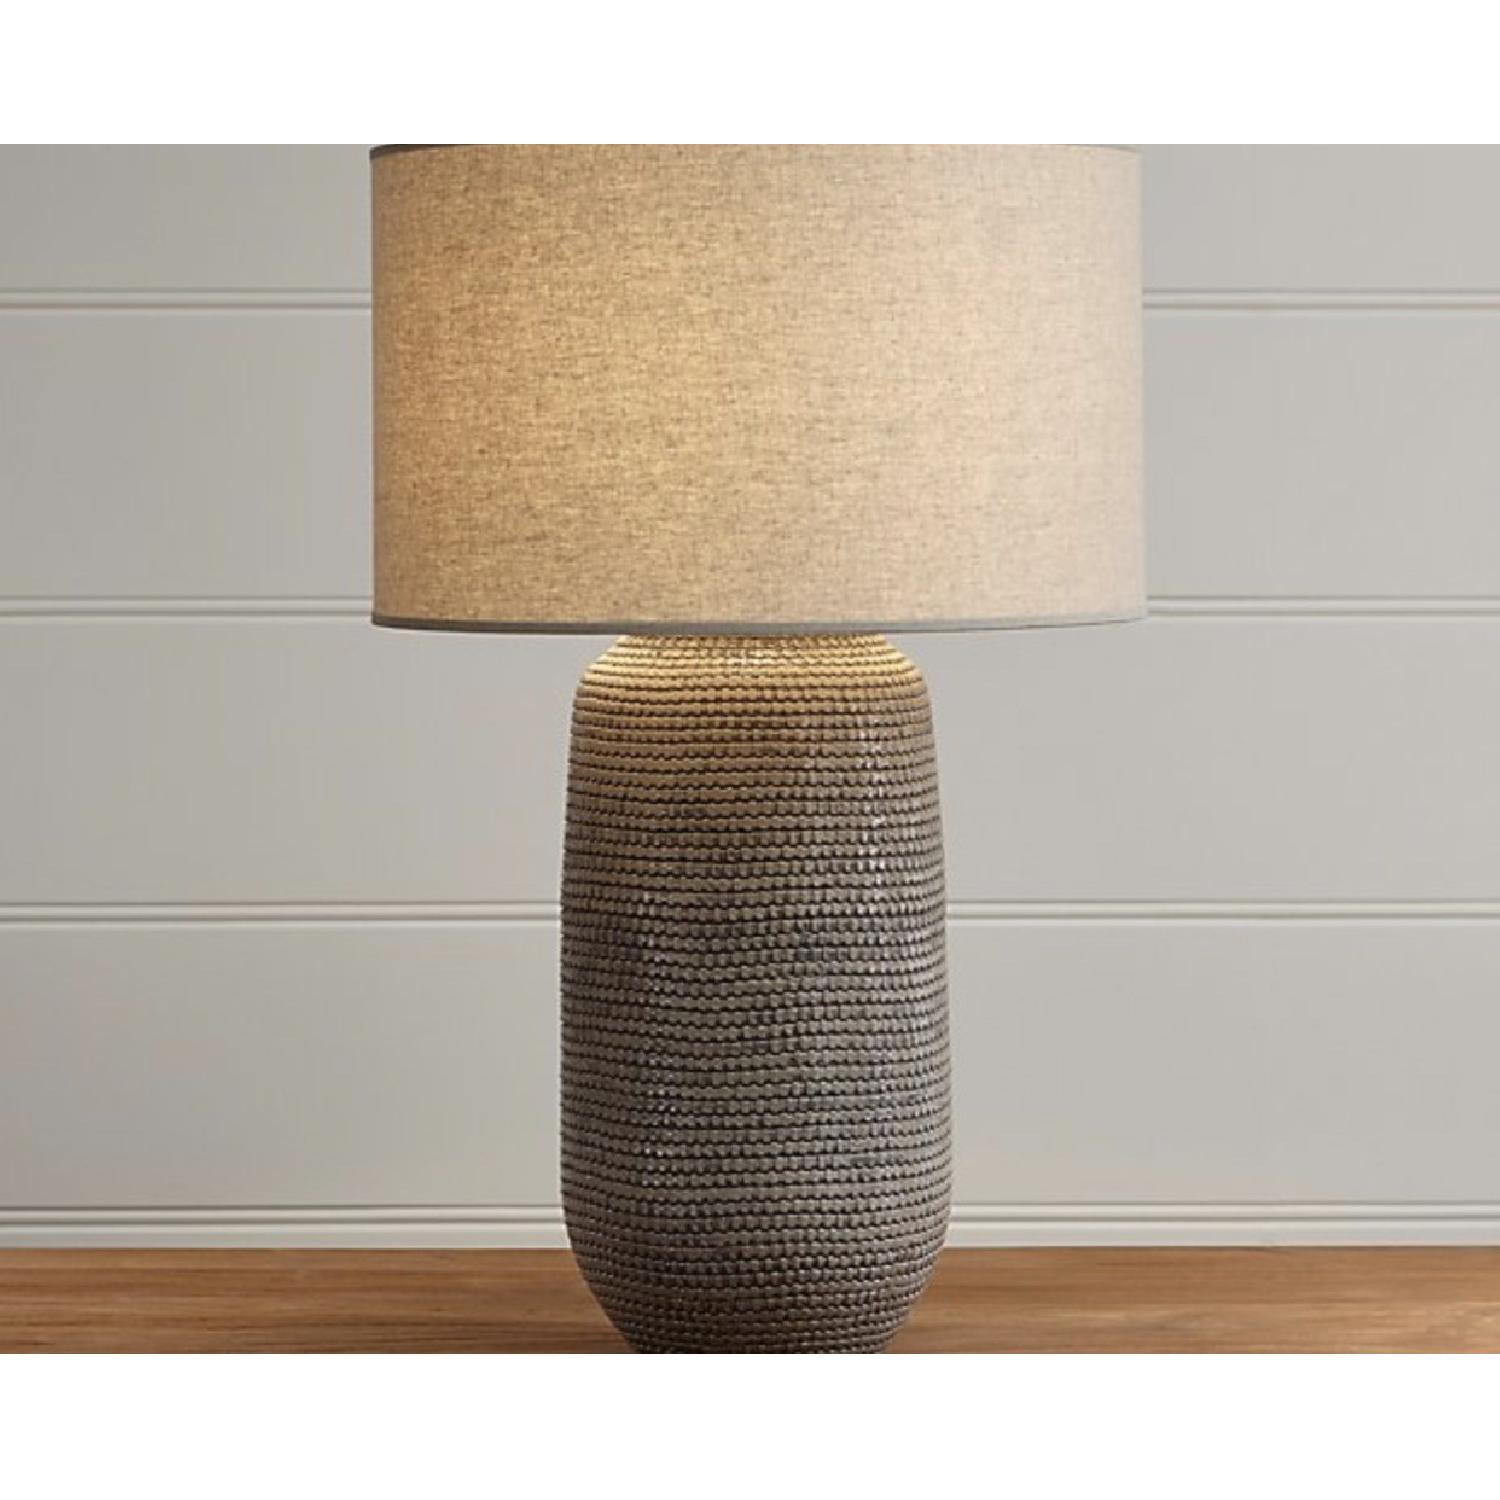 Crate & Barrel Cane Grey Table Lamp-1